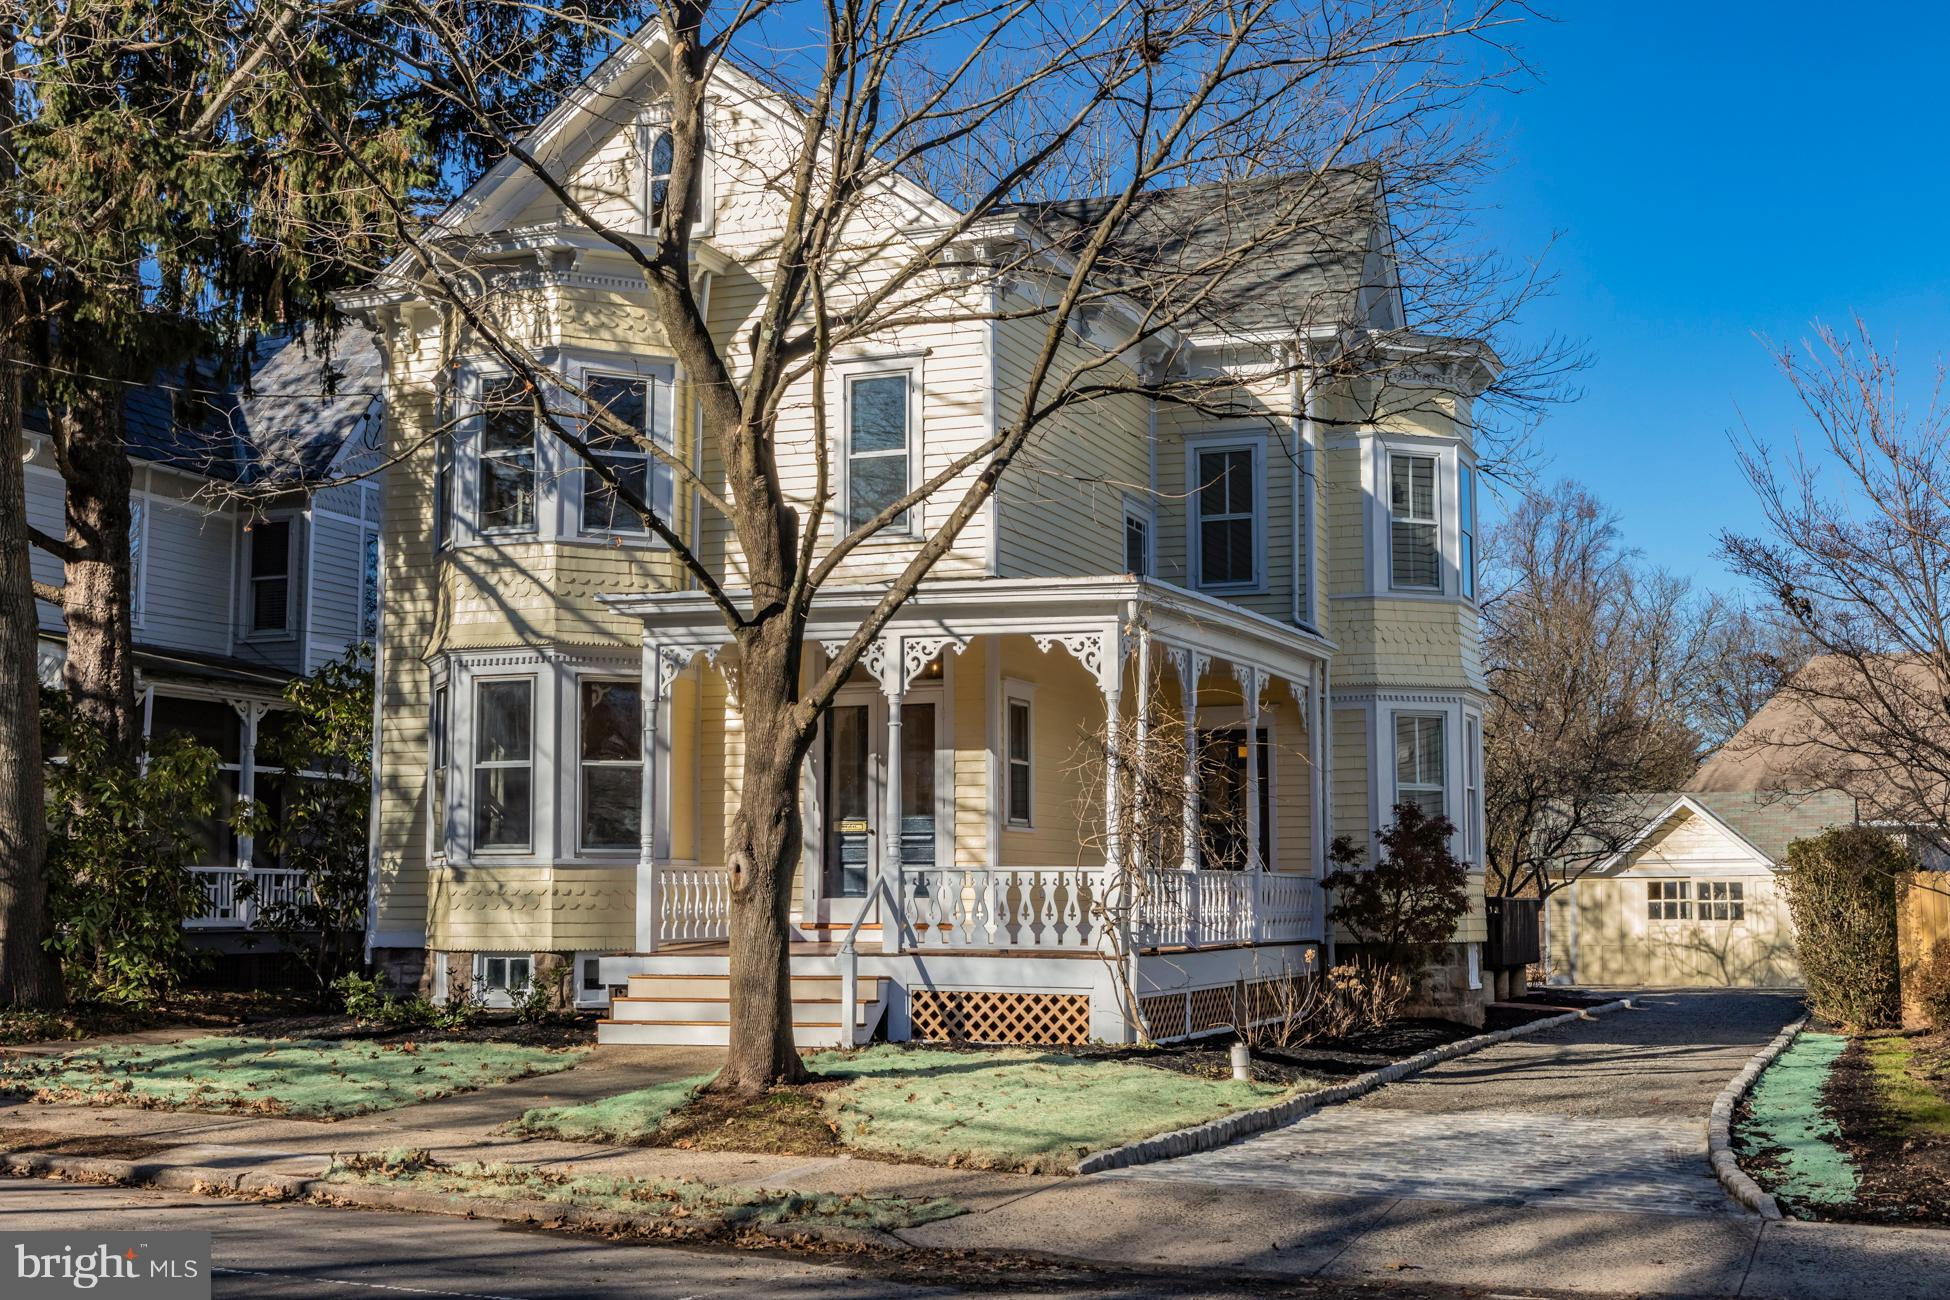 25 E DELAWARE AVENUE, PENNINGTON, NJ 08534